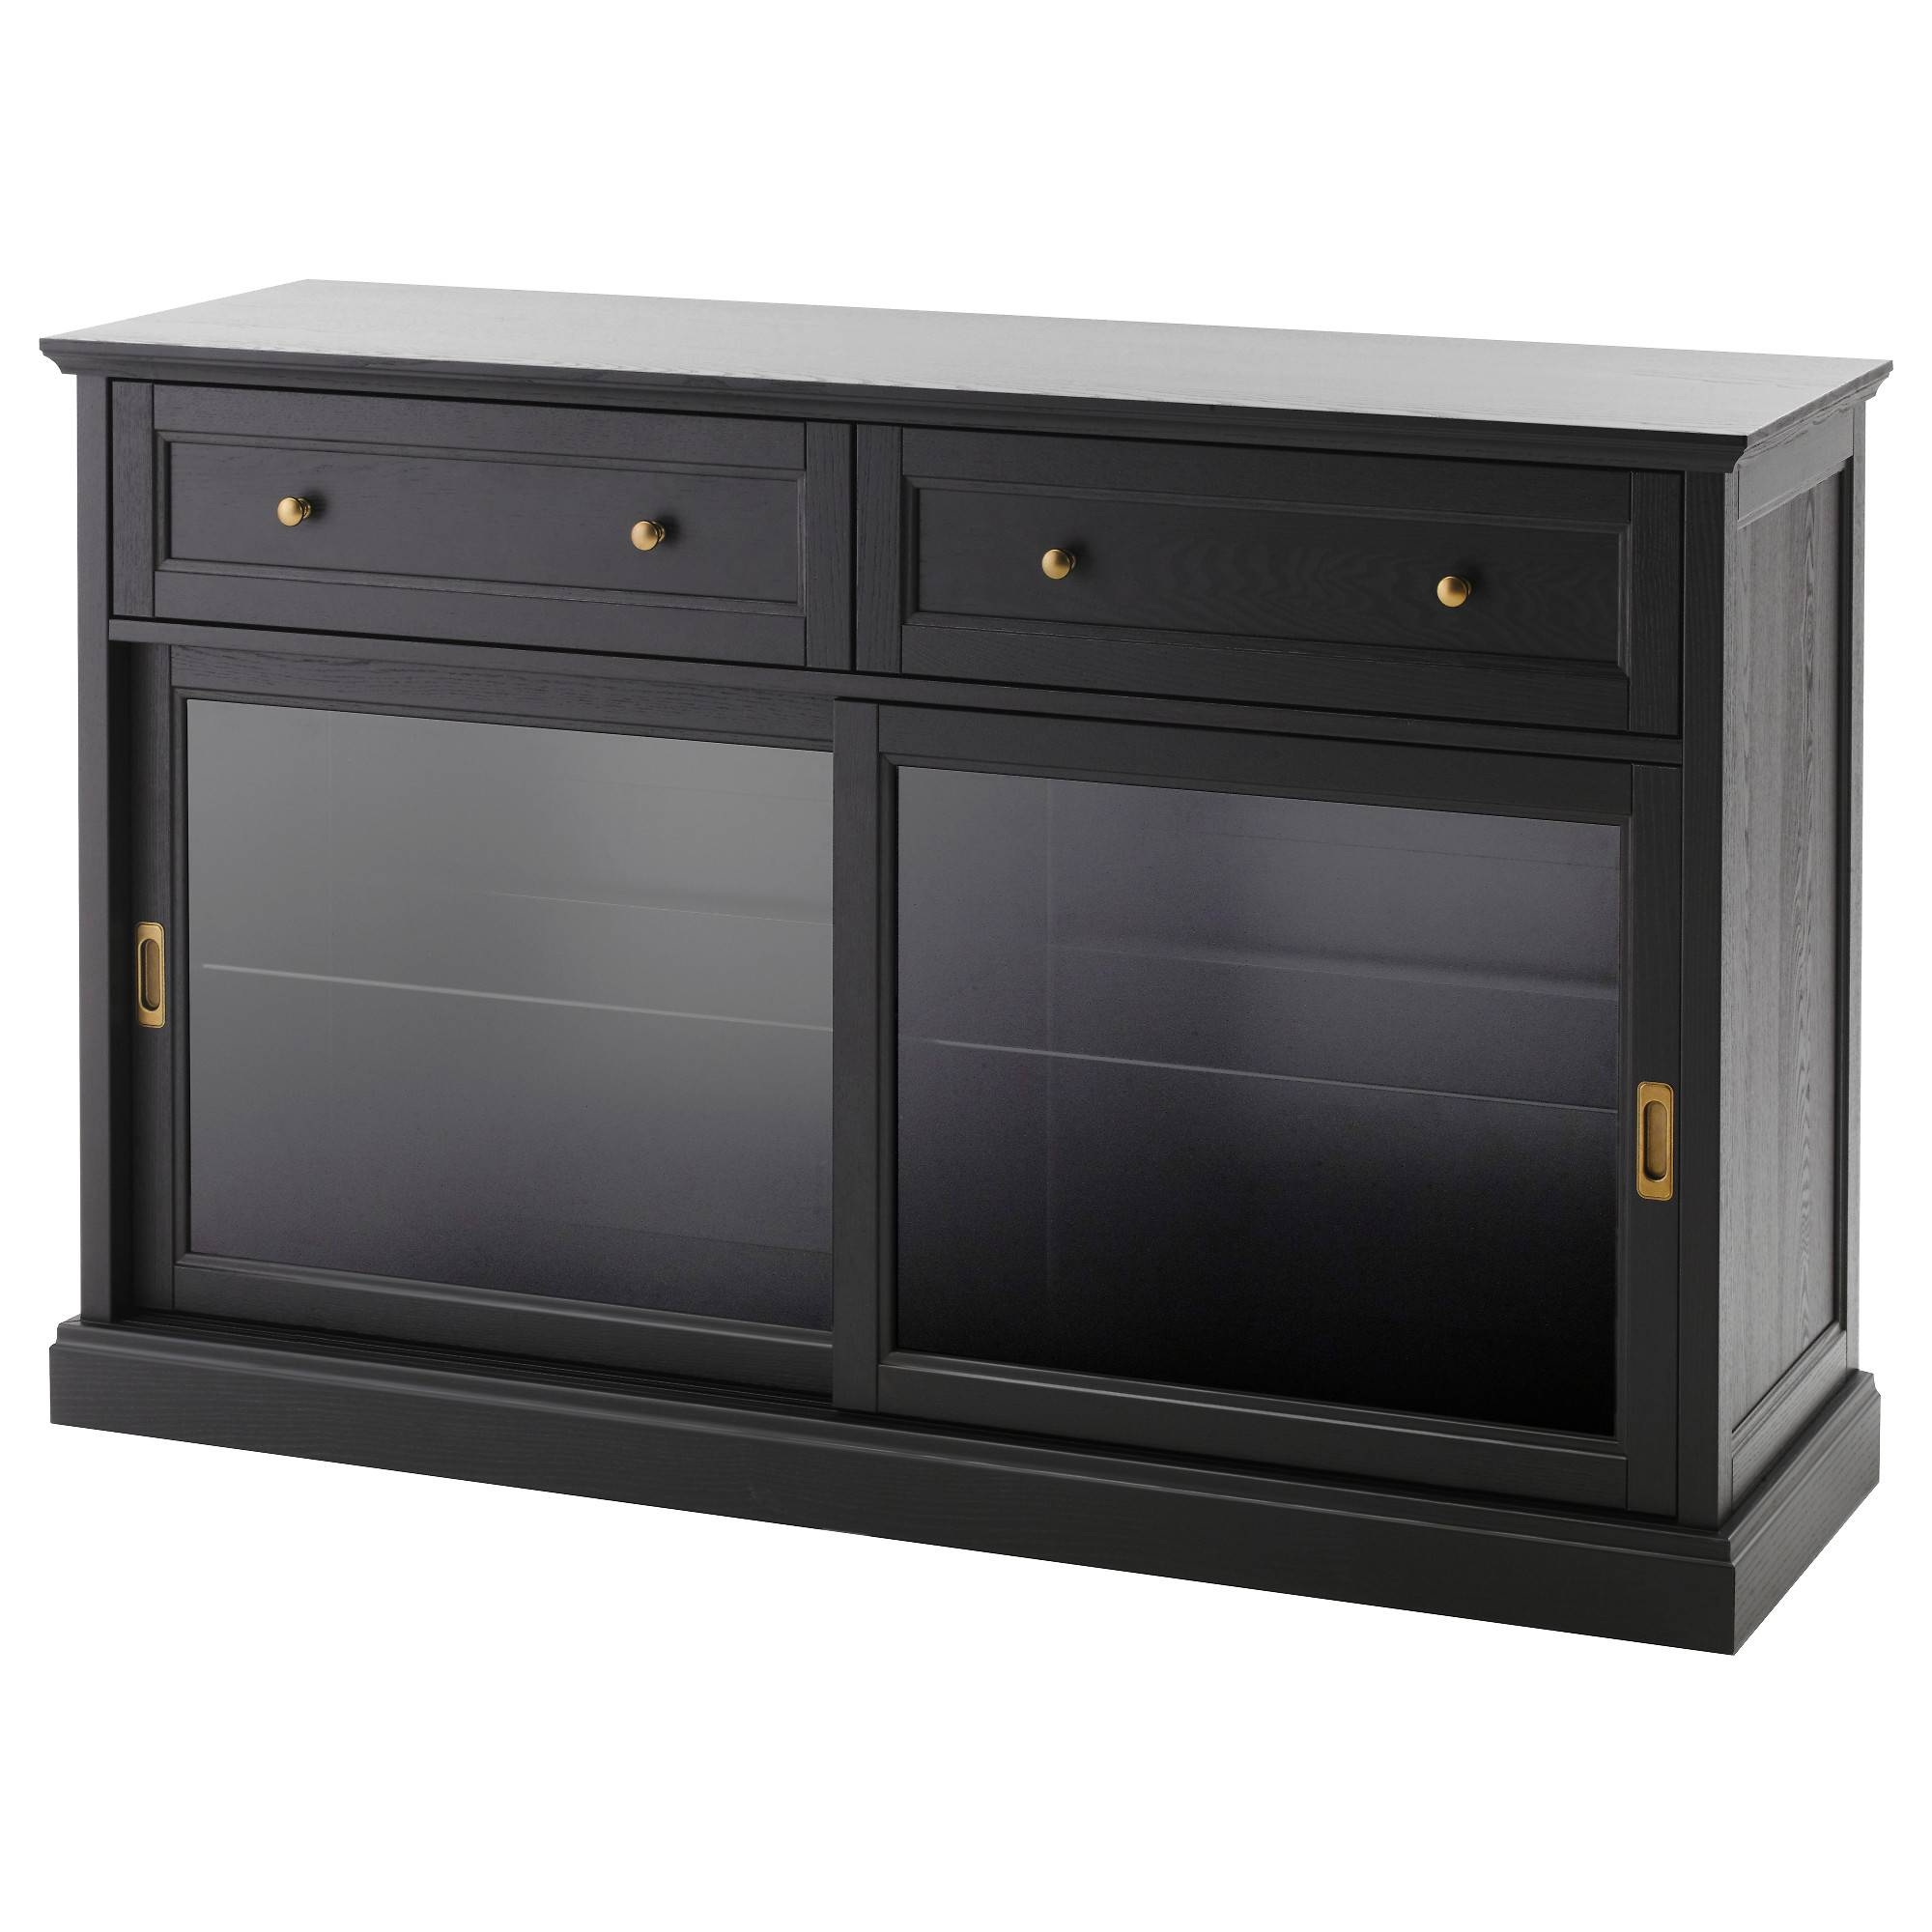 Buffet Tables & Sideboards - Ikea for White Sideboard Furniture (Image 4 of 30)